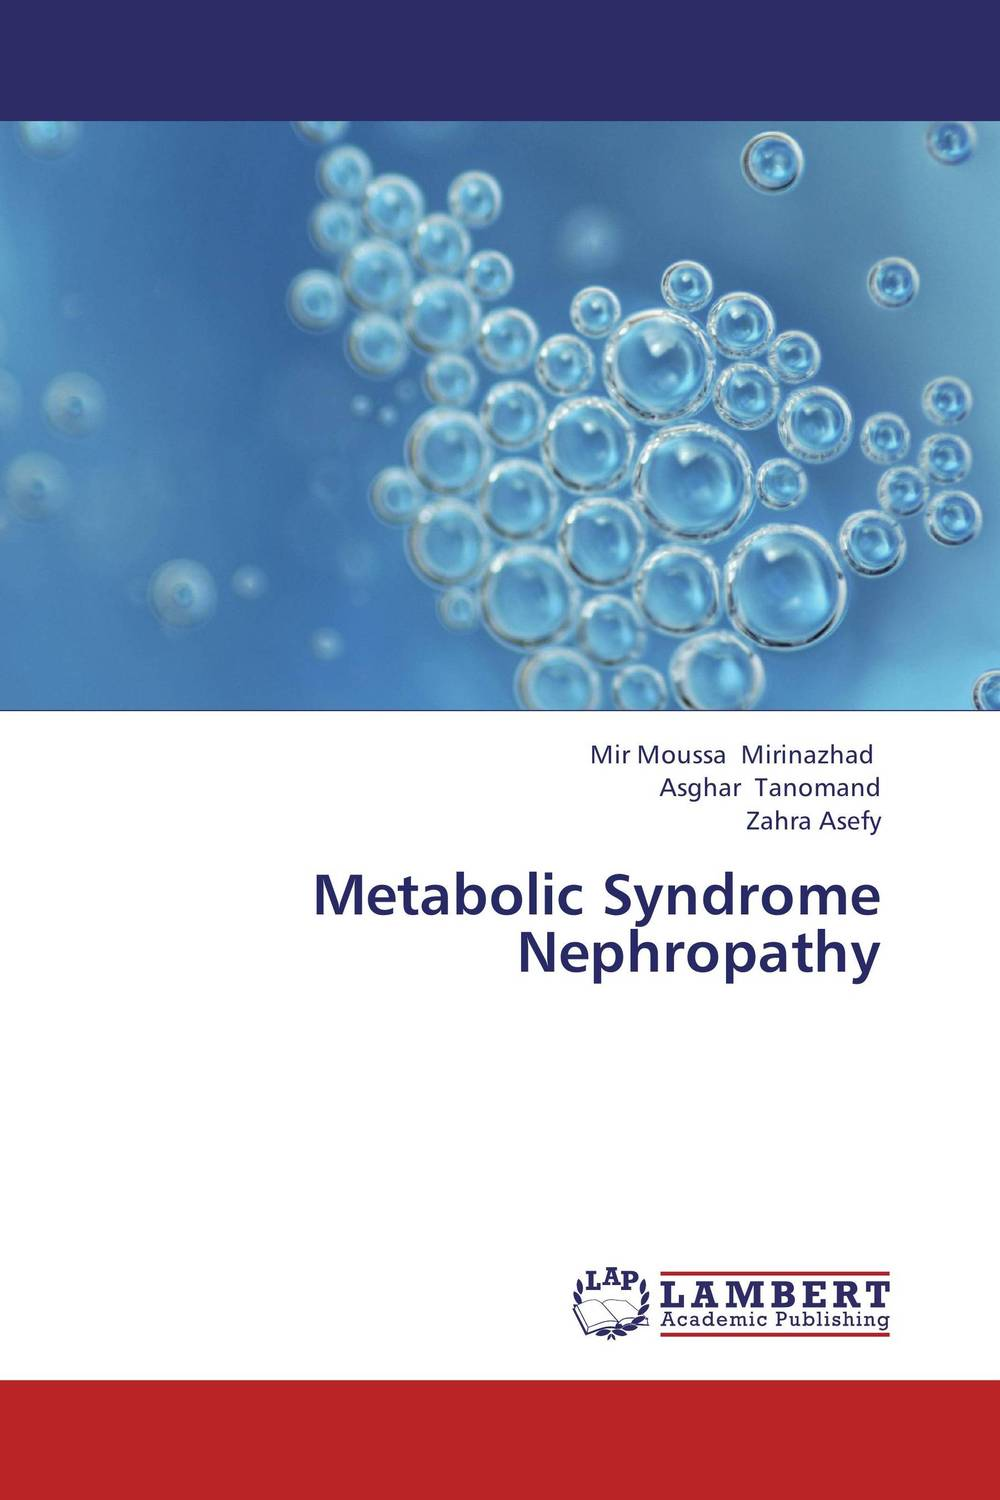 Metabolic Syndrome Nephropathy prevalance of metabolic syndrome in baghdad